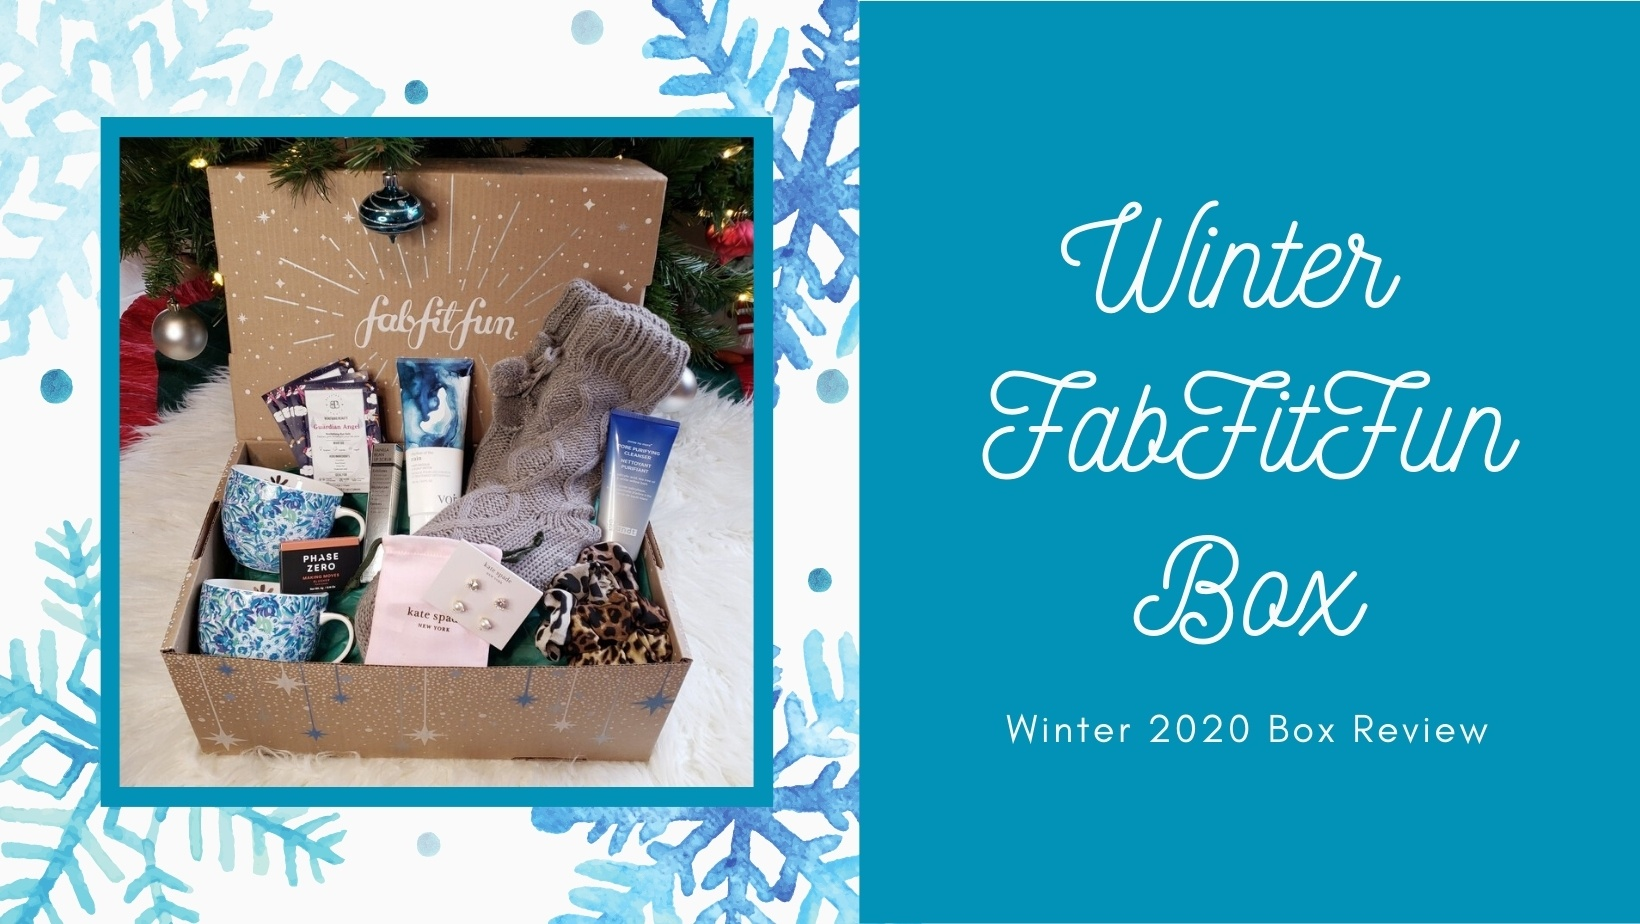 Winter Fabfitfun Featured Image